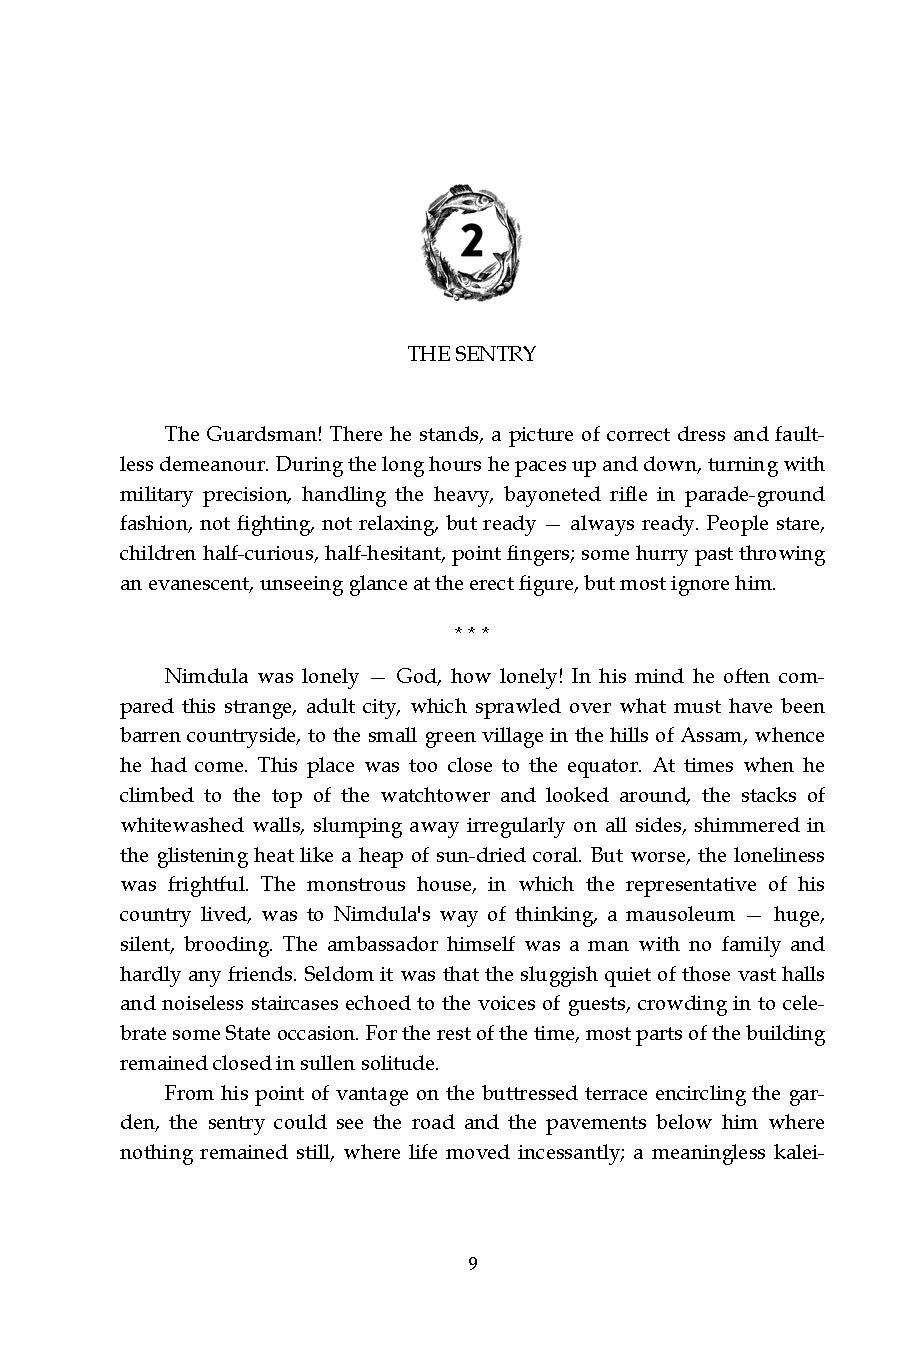 jgre050217 (final text)_Page_11.jpg